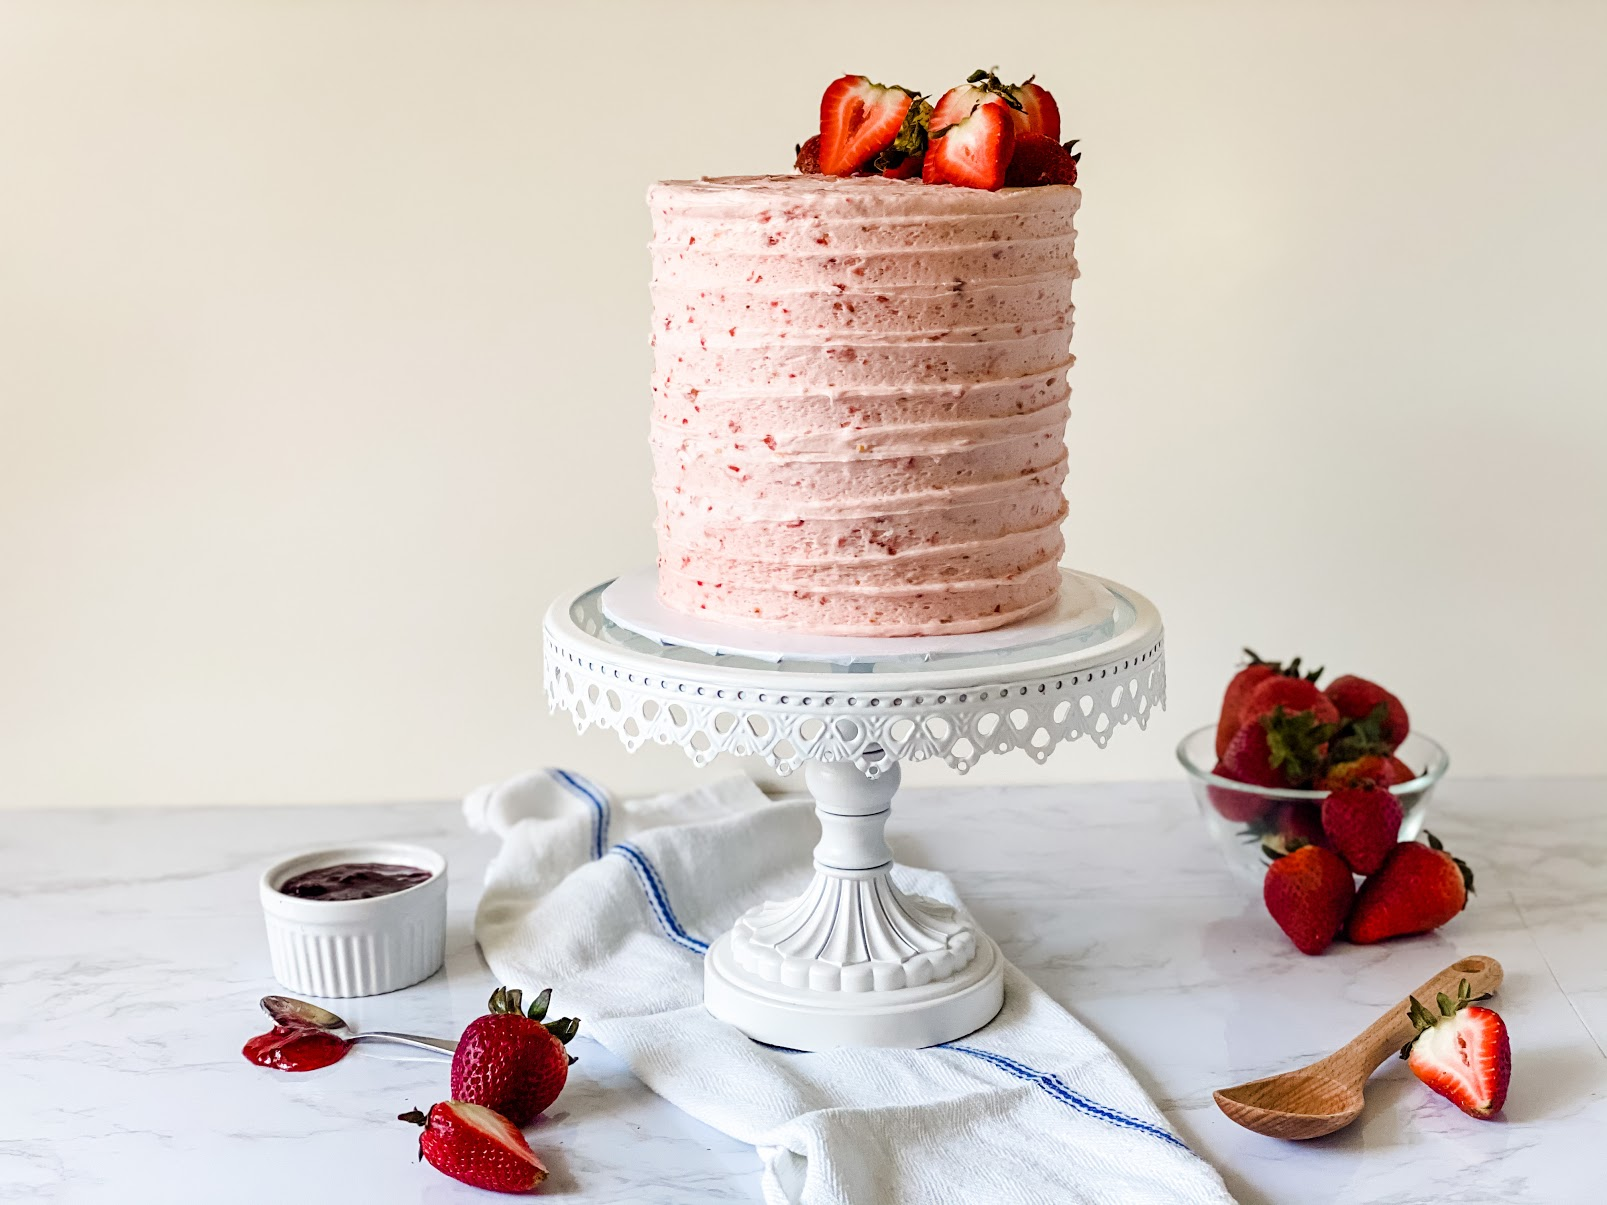 Are you looking for a super tasty strawberry cake recipe? Seriously, anyone can make this strawberry layer cake recipe. Created by Katie Rosario, XOKatieRosario creates beautiful cake decorating techniques that are easy for beginners and strategically designed for any home baker. #xokatierosario #katierosaiocakes #strawberrycake #freshstrawberry #cakerecipes #cakedecoratingcourse